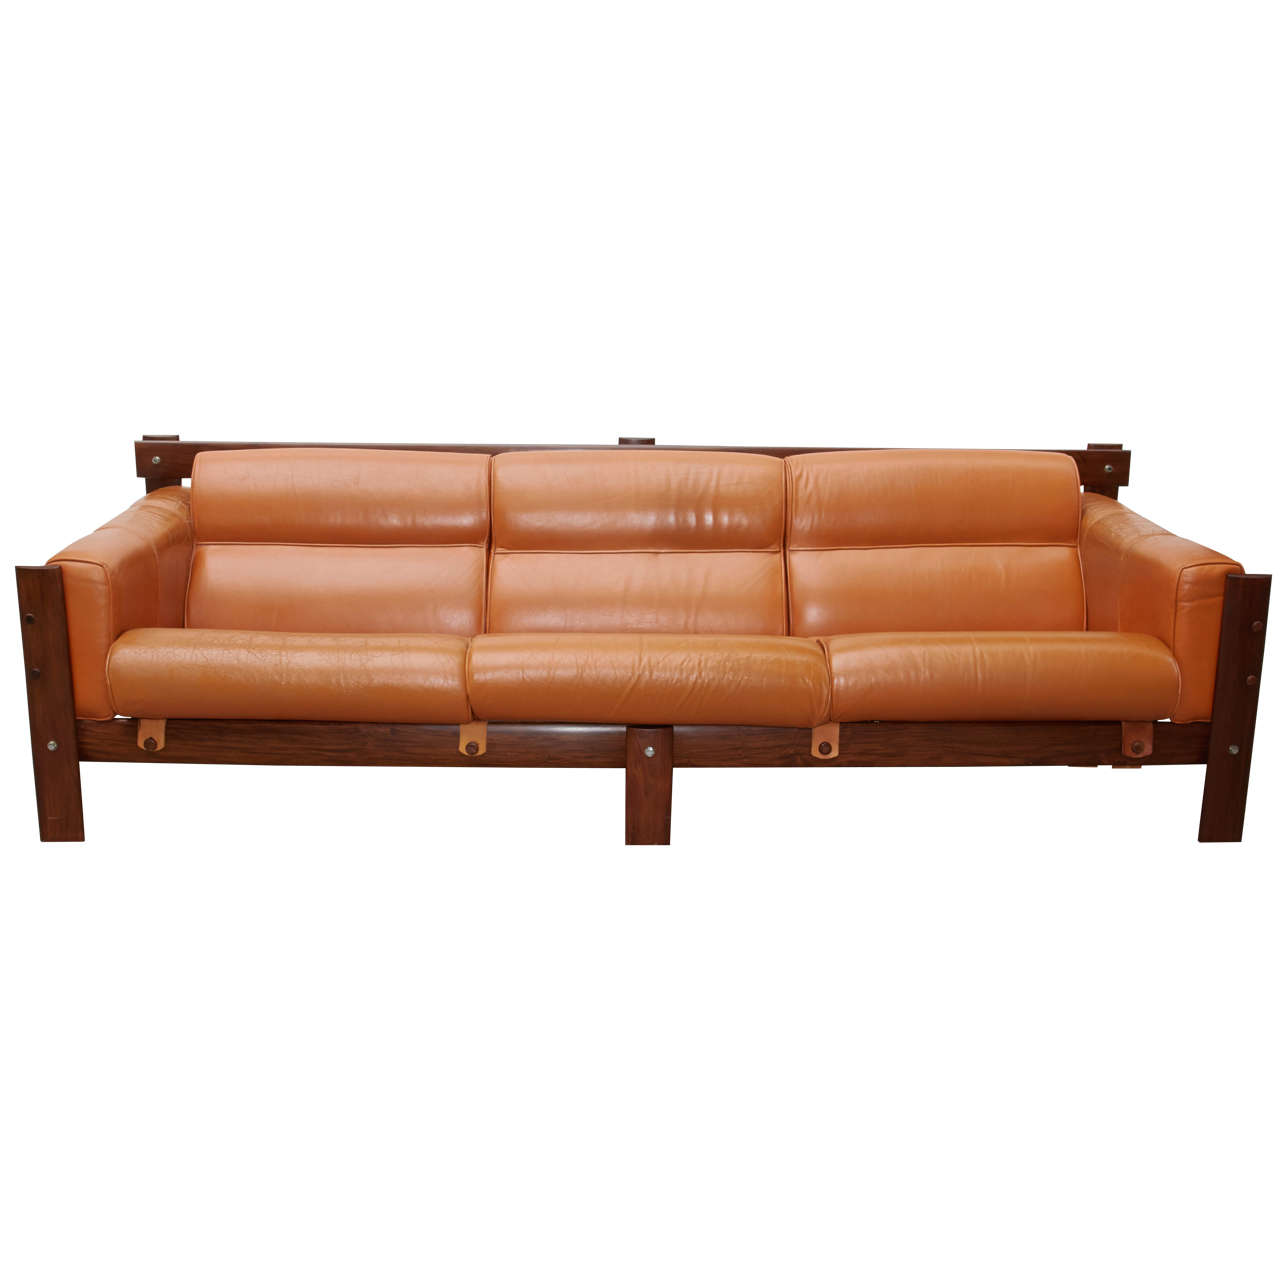 mid century sofa in cognac leather and rosewood designed. Black Bedroom Furniture Sets. Home Design Ideas